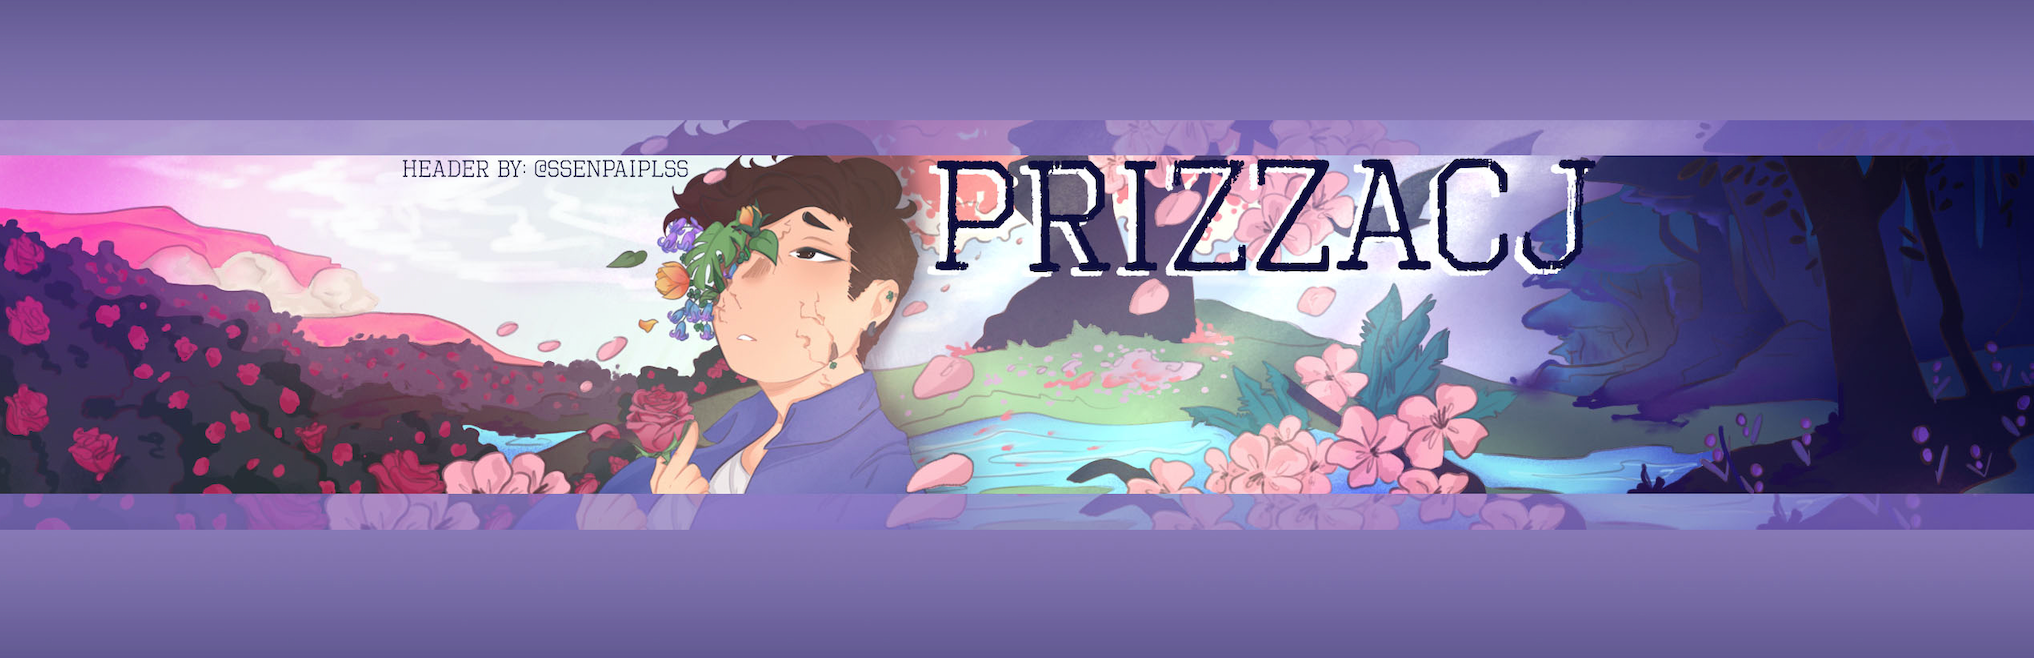 The official merch store of Prizza Productions